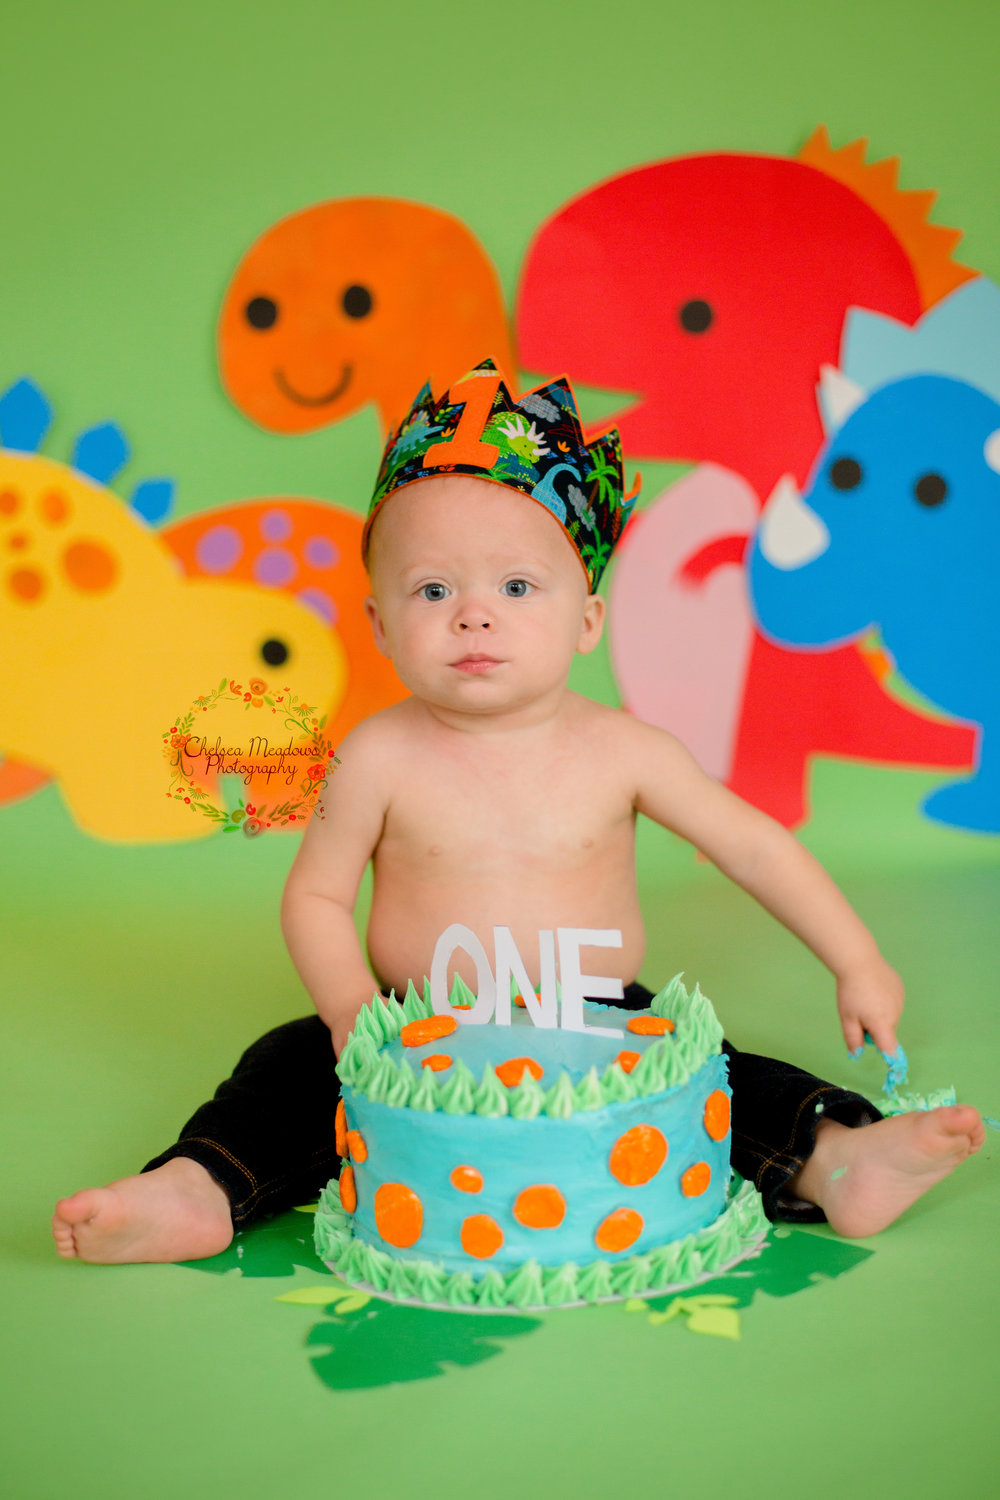 Owen First Birthday - Nashville Family Photographer - Chelsea Meadows Photography (78).jpg